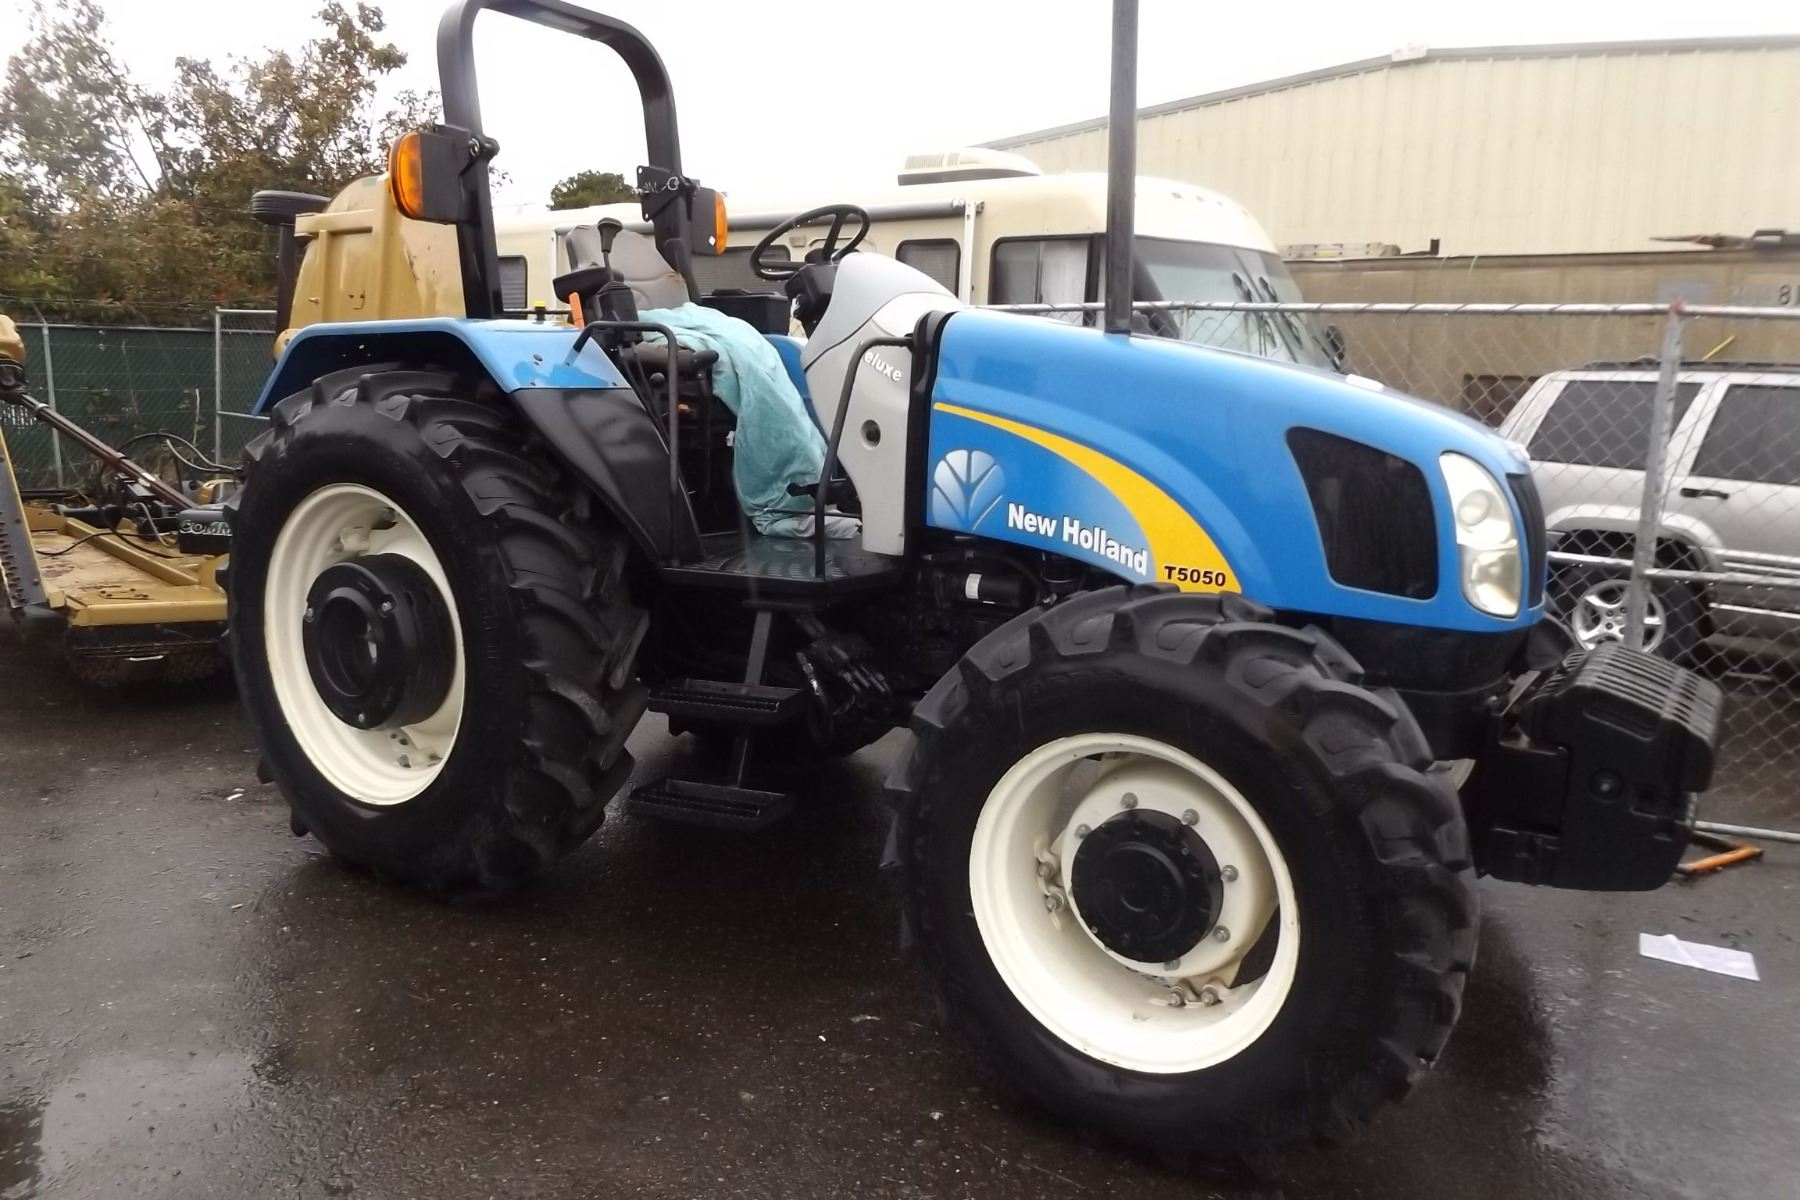 NEW HOLLAND T5050 Speeds Auto Auctions